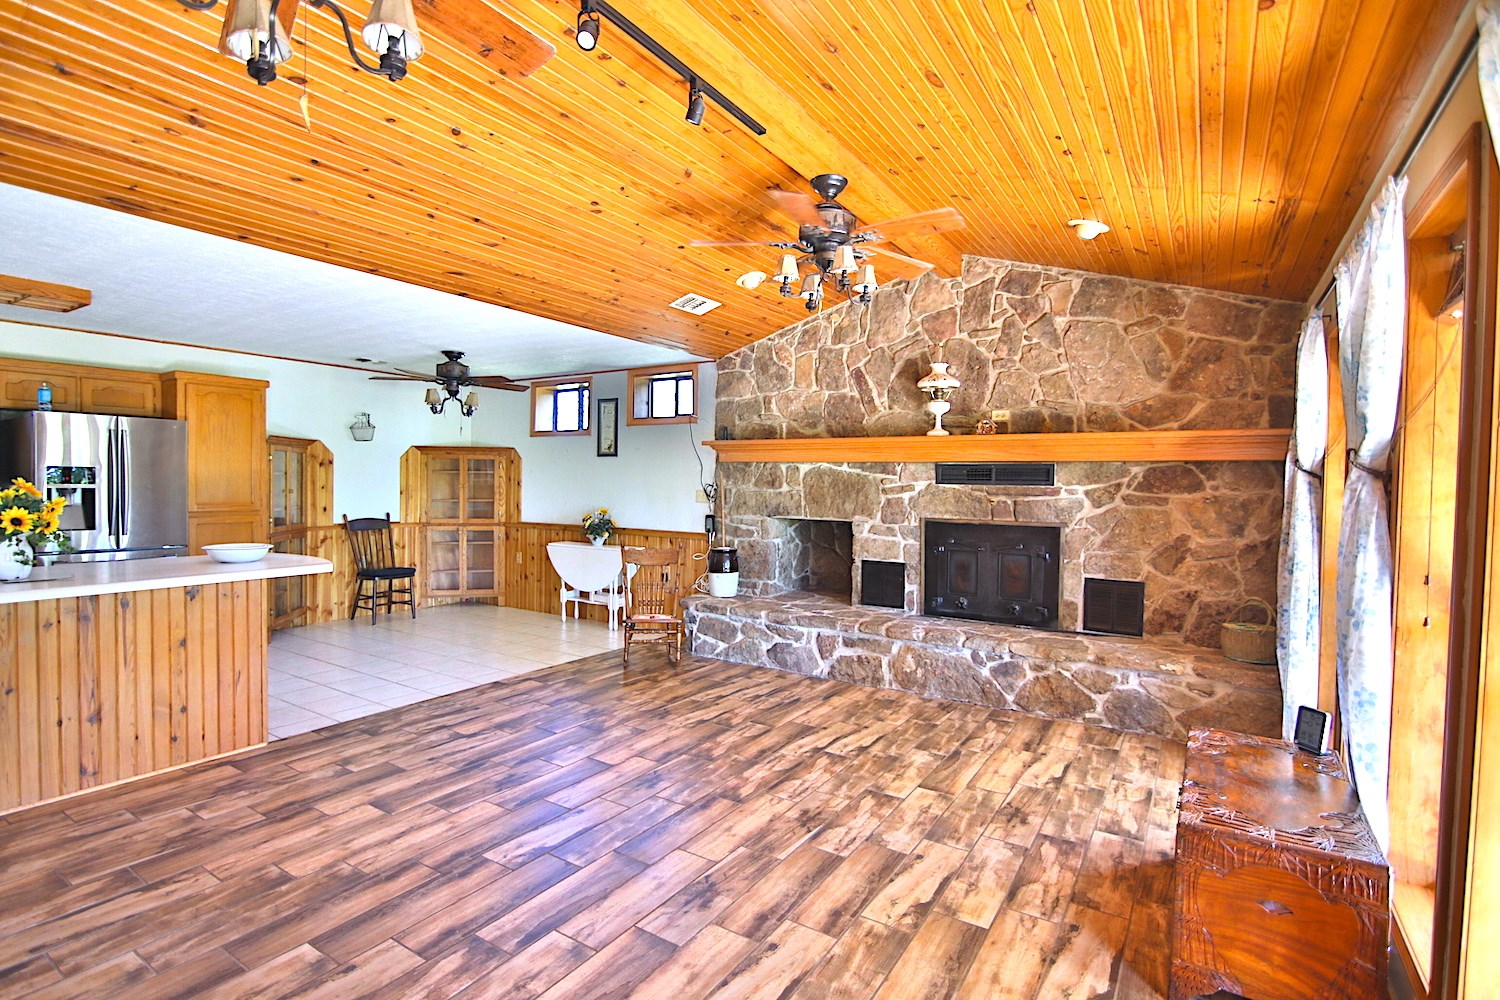 TWO COUNTRY HOMES IN THE OZARKS FOR SALE